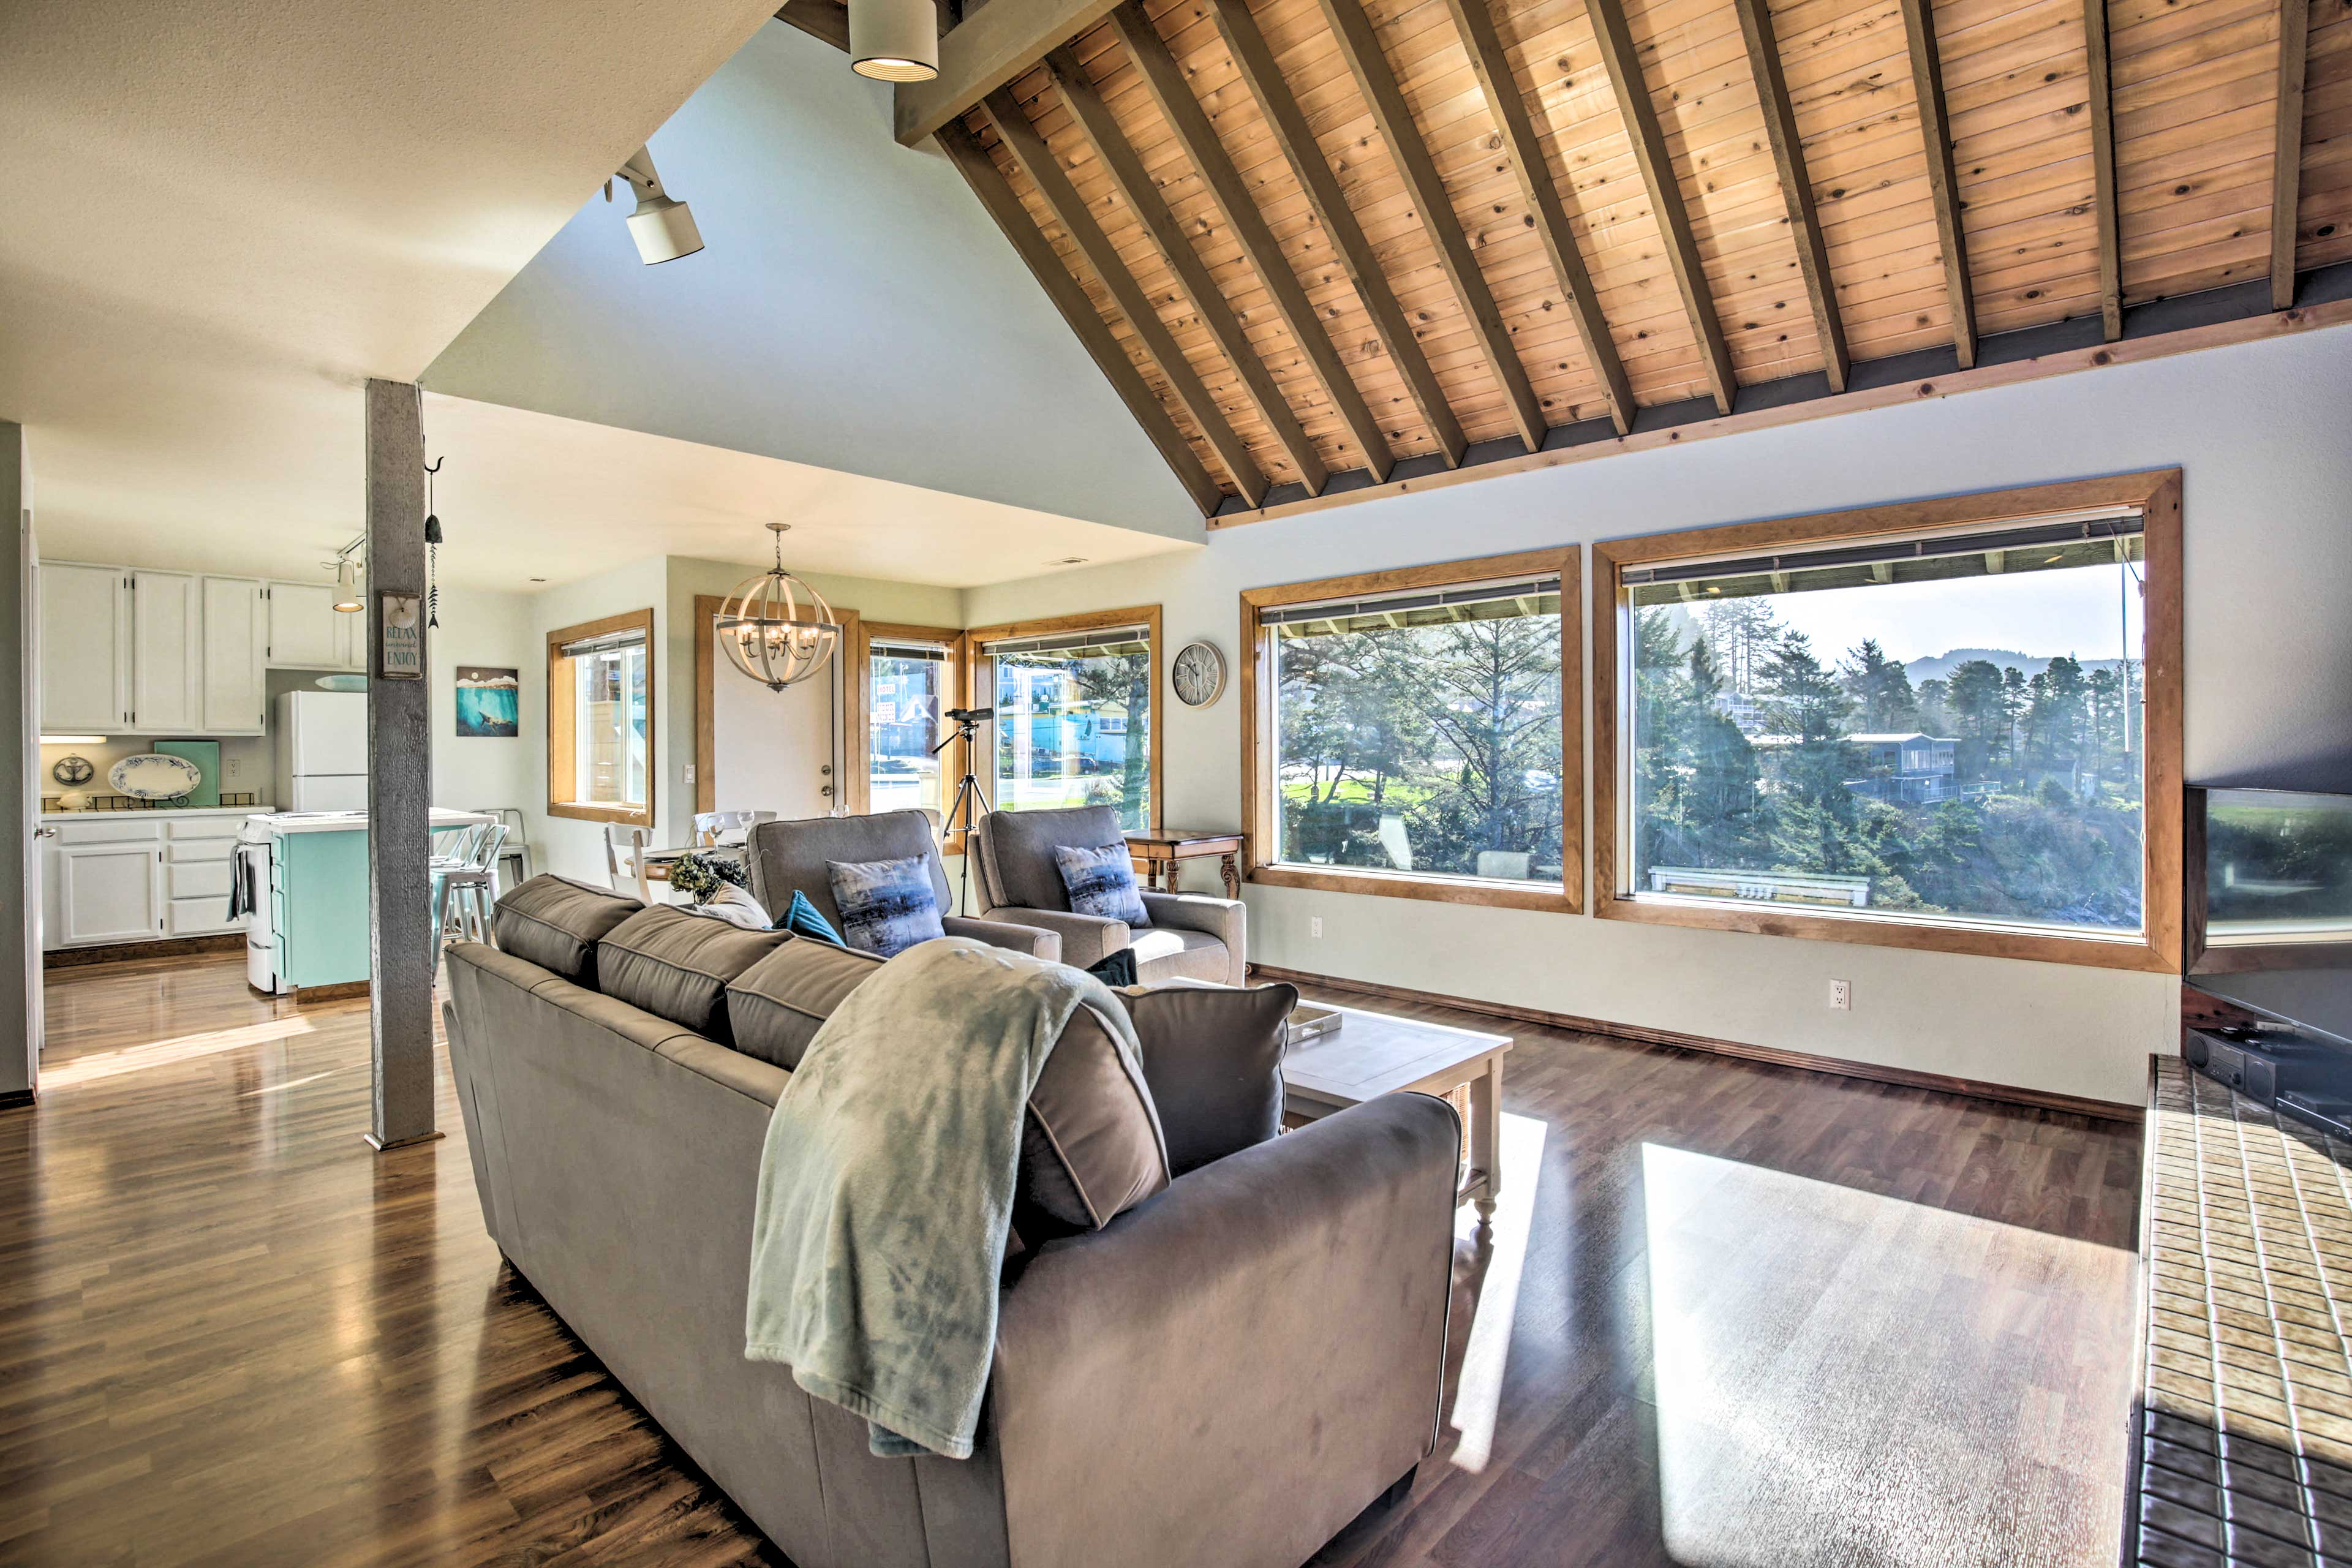 The large windows fill the space with natural light.